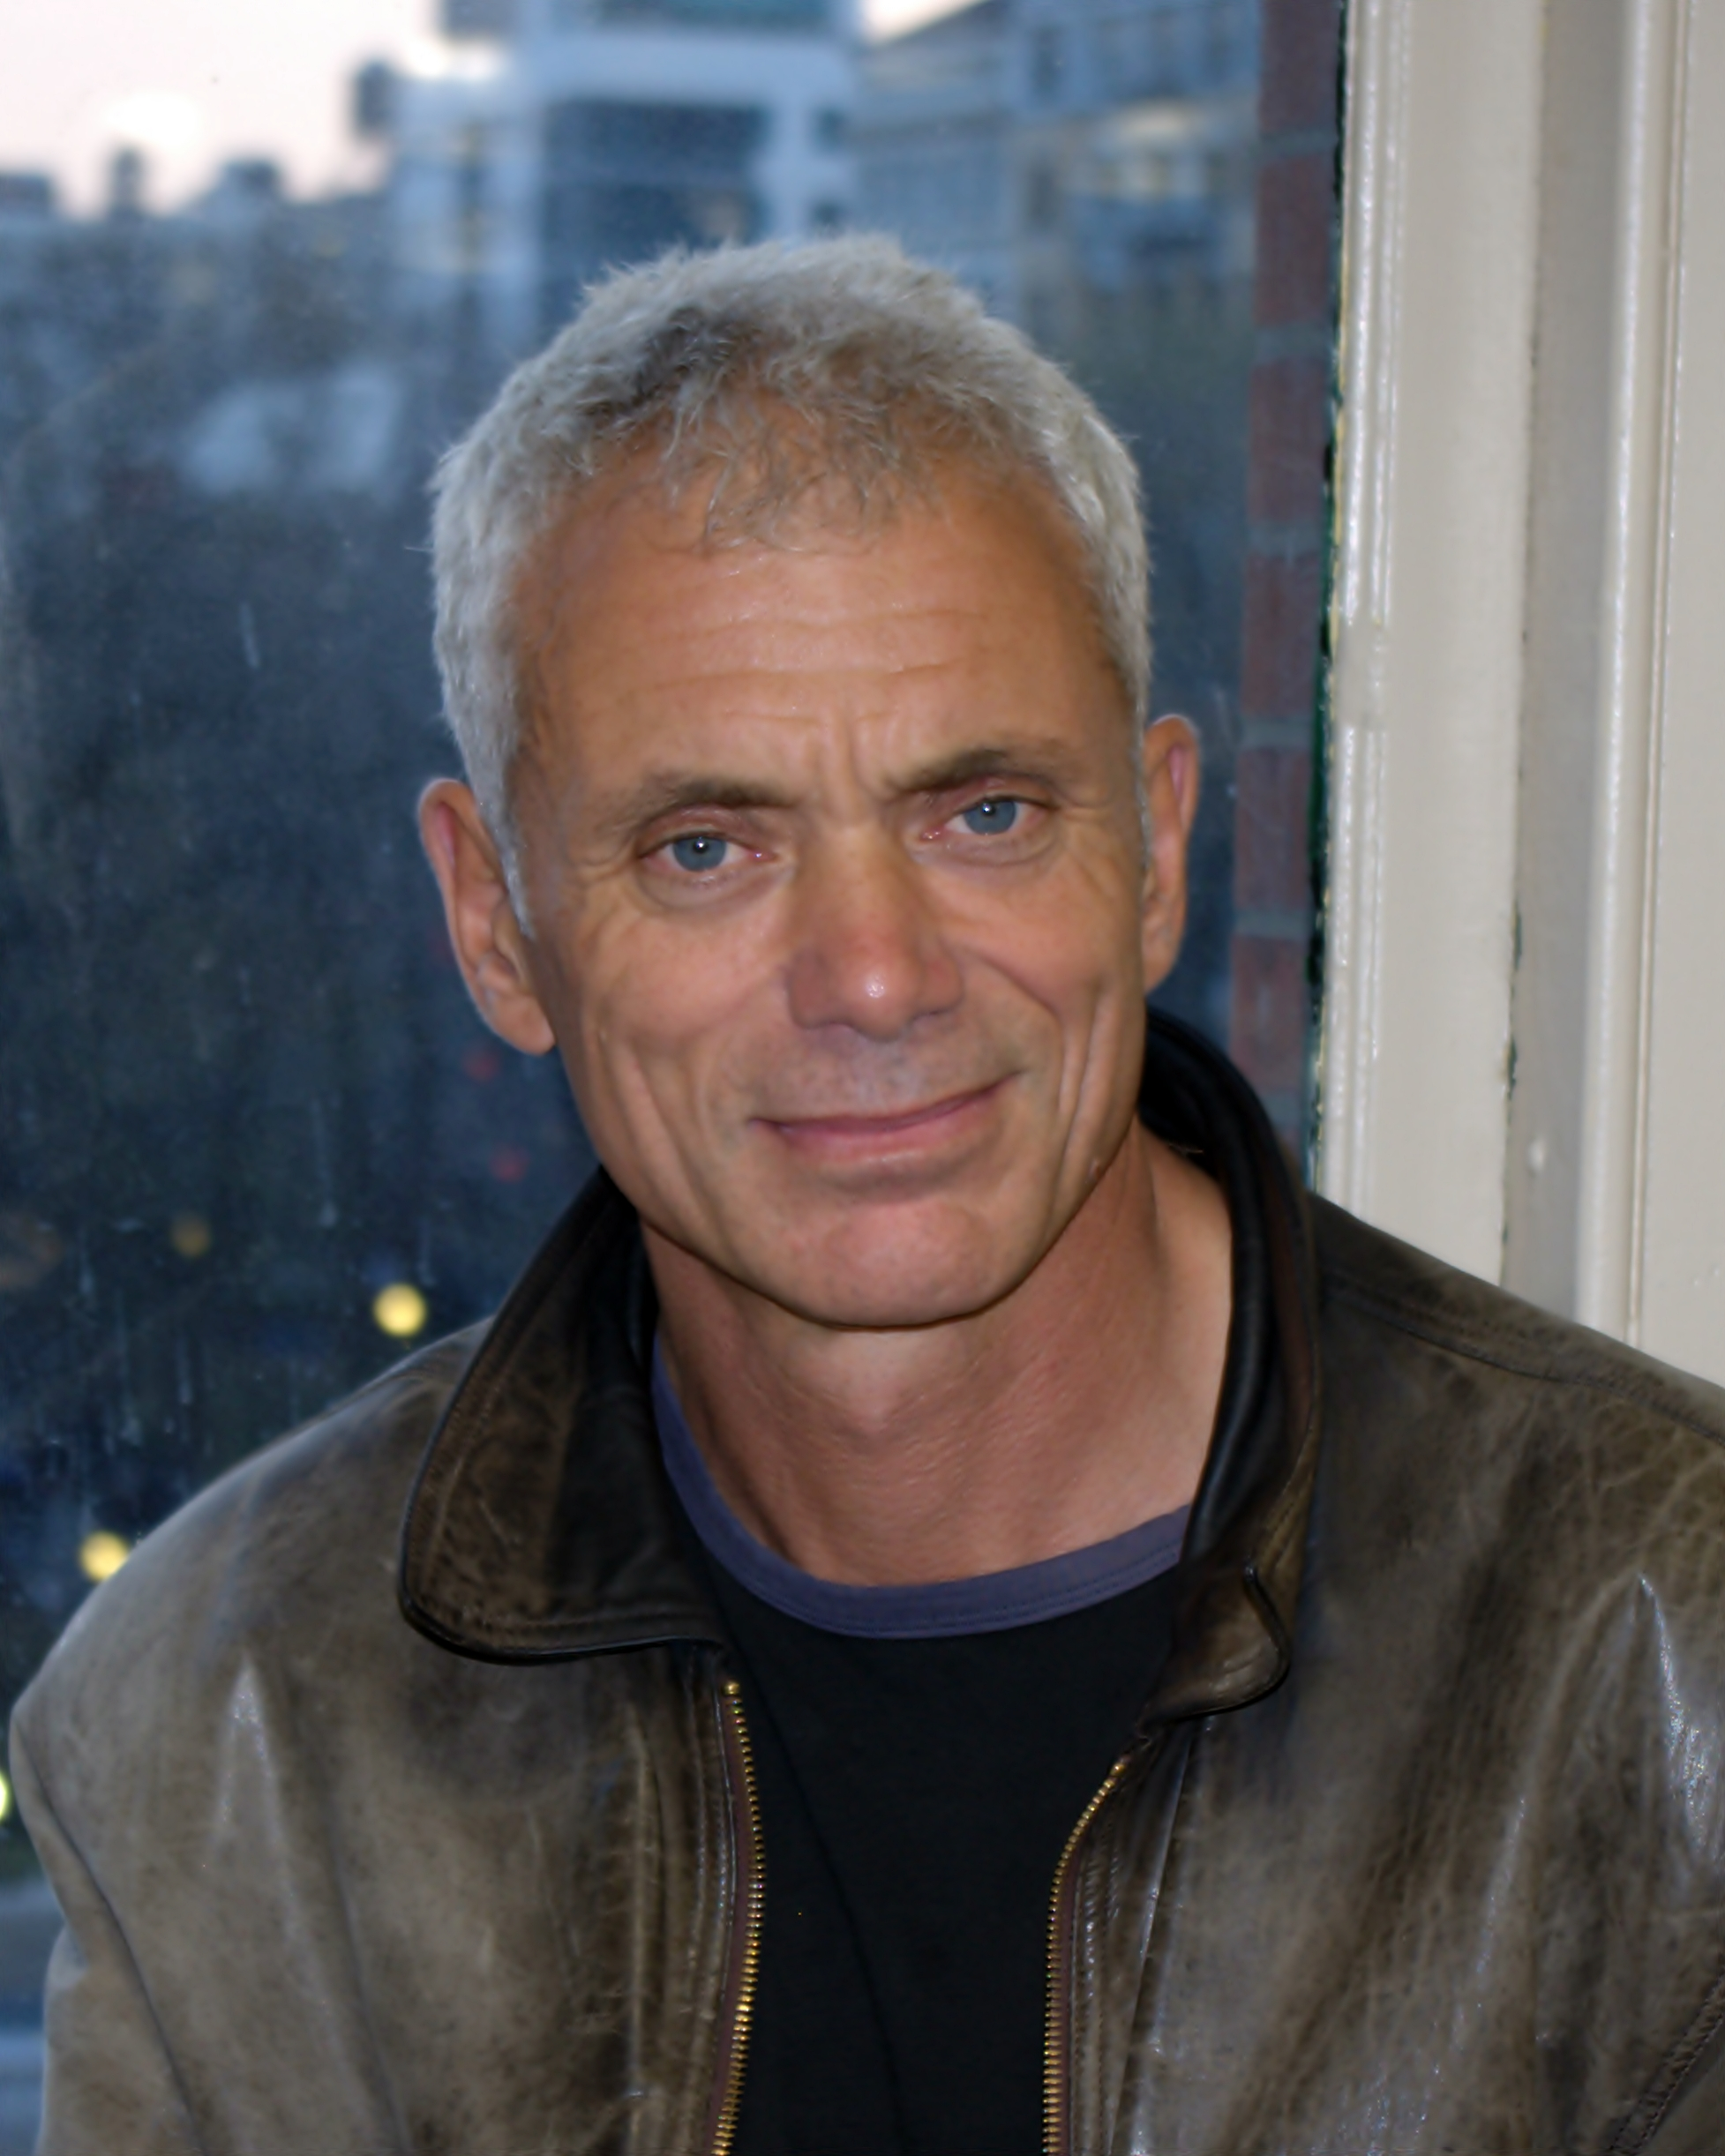 The 62-year old son of father (?) and mother(?) Jeremy Wade in 2018 photo. Jeremy Wade earned a  million dollar salary - leaving the net worth at 1.5 million in 2018